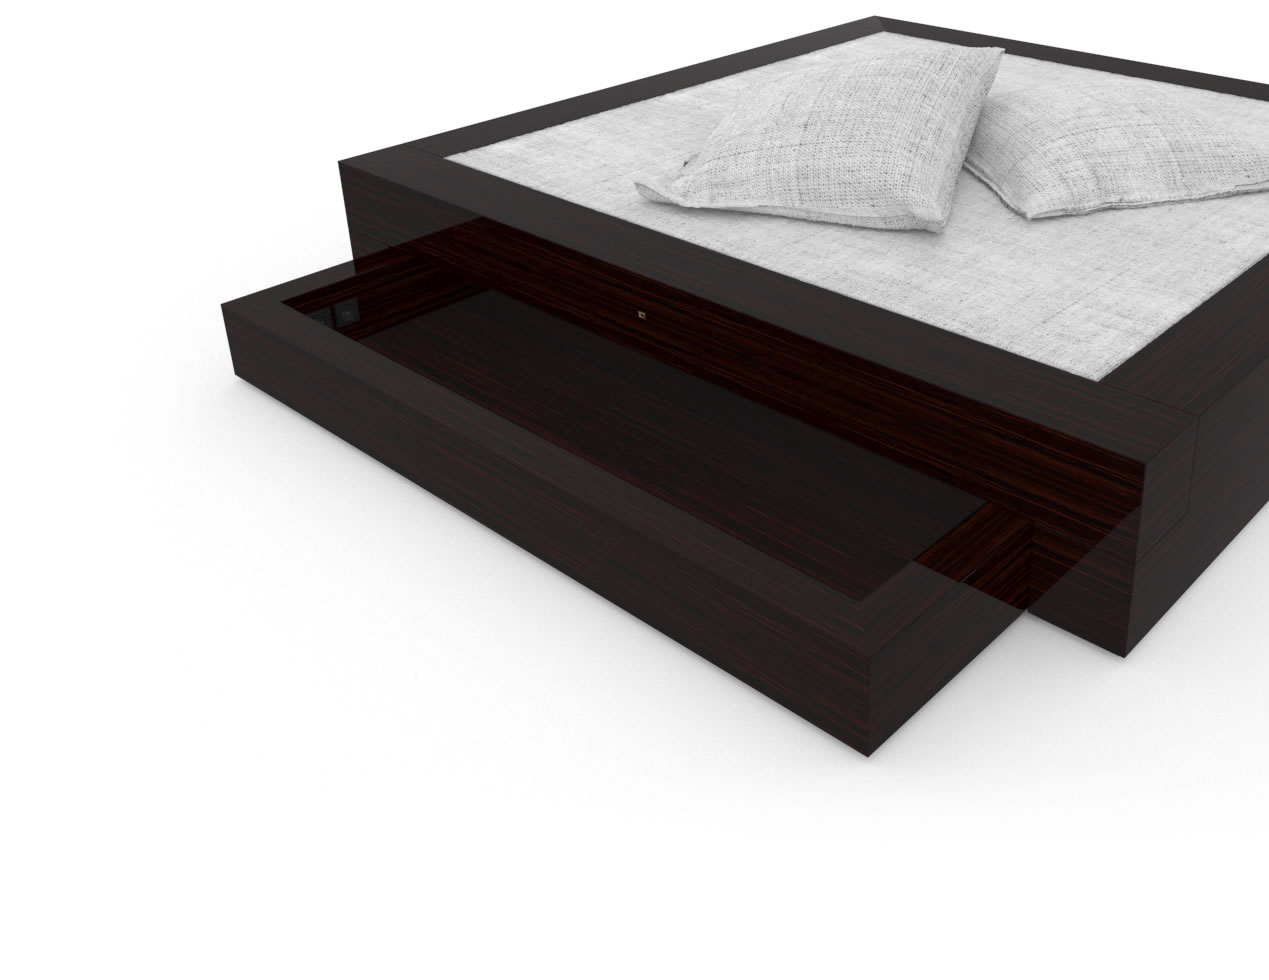 FELIX SCHWAKE BED I I 2 Under Bed Drarwers High Gloss Makassar Ebony Black Precious Wood Mirror Polish Piano Finish Customize Bed with Drawers